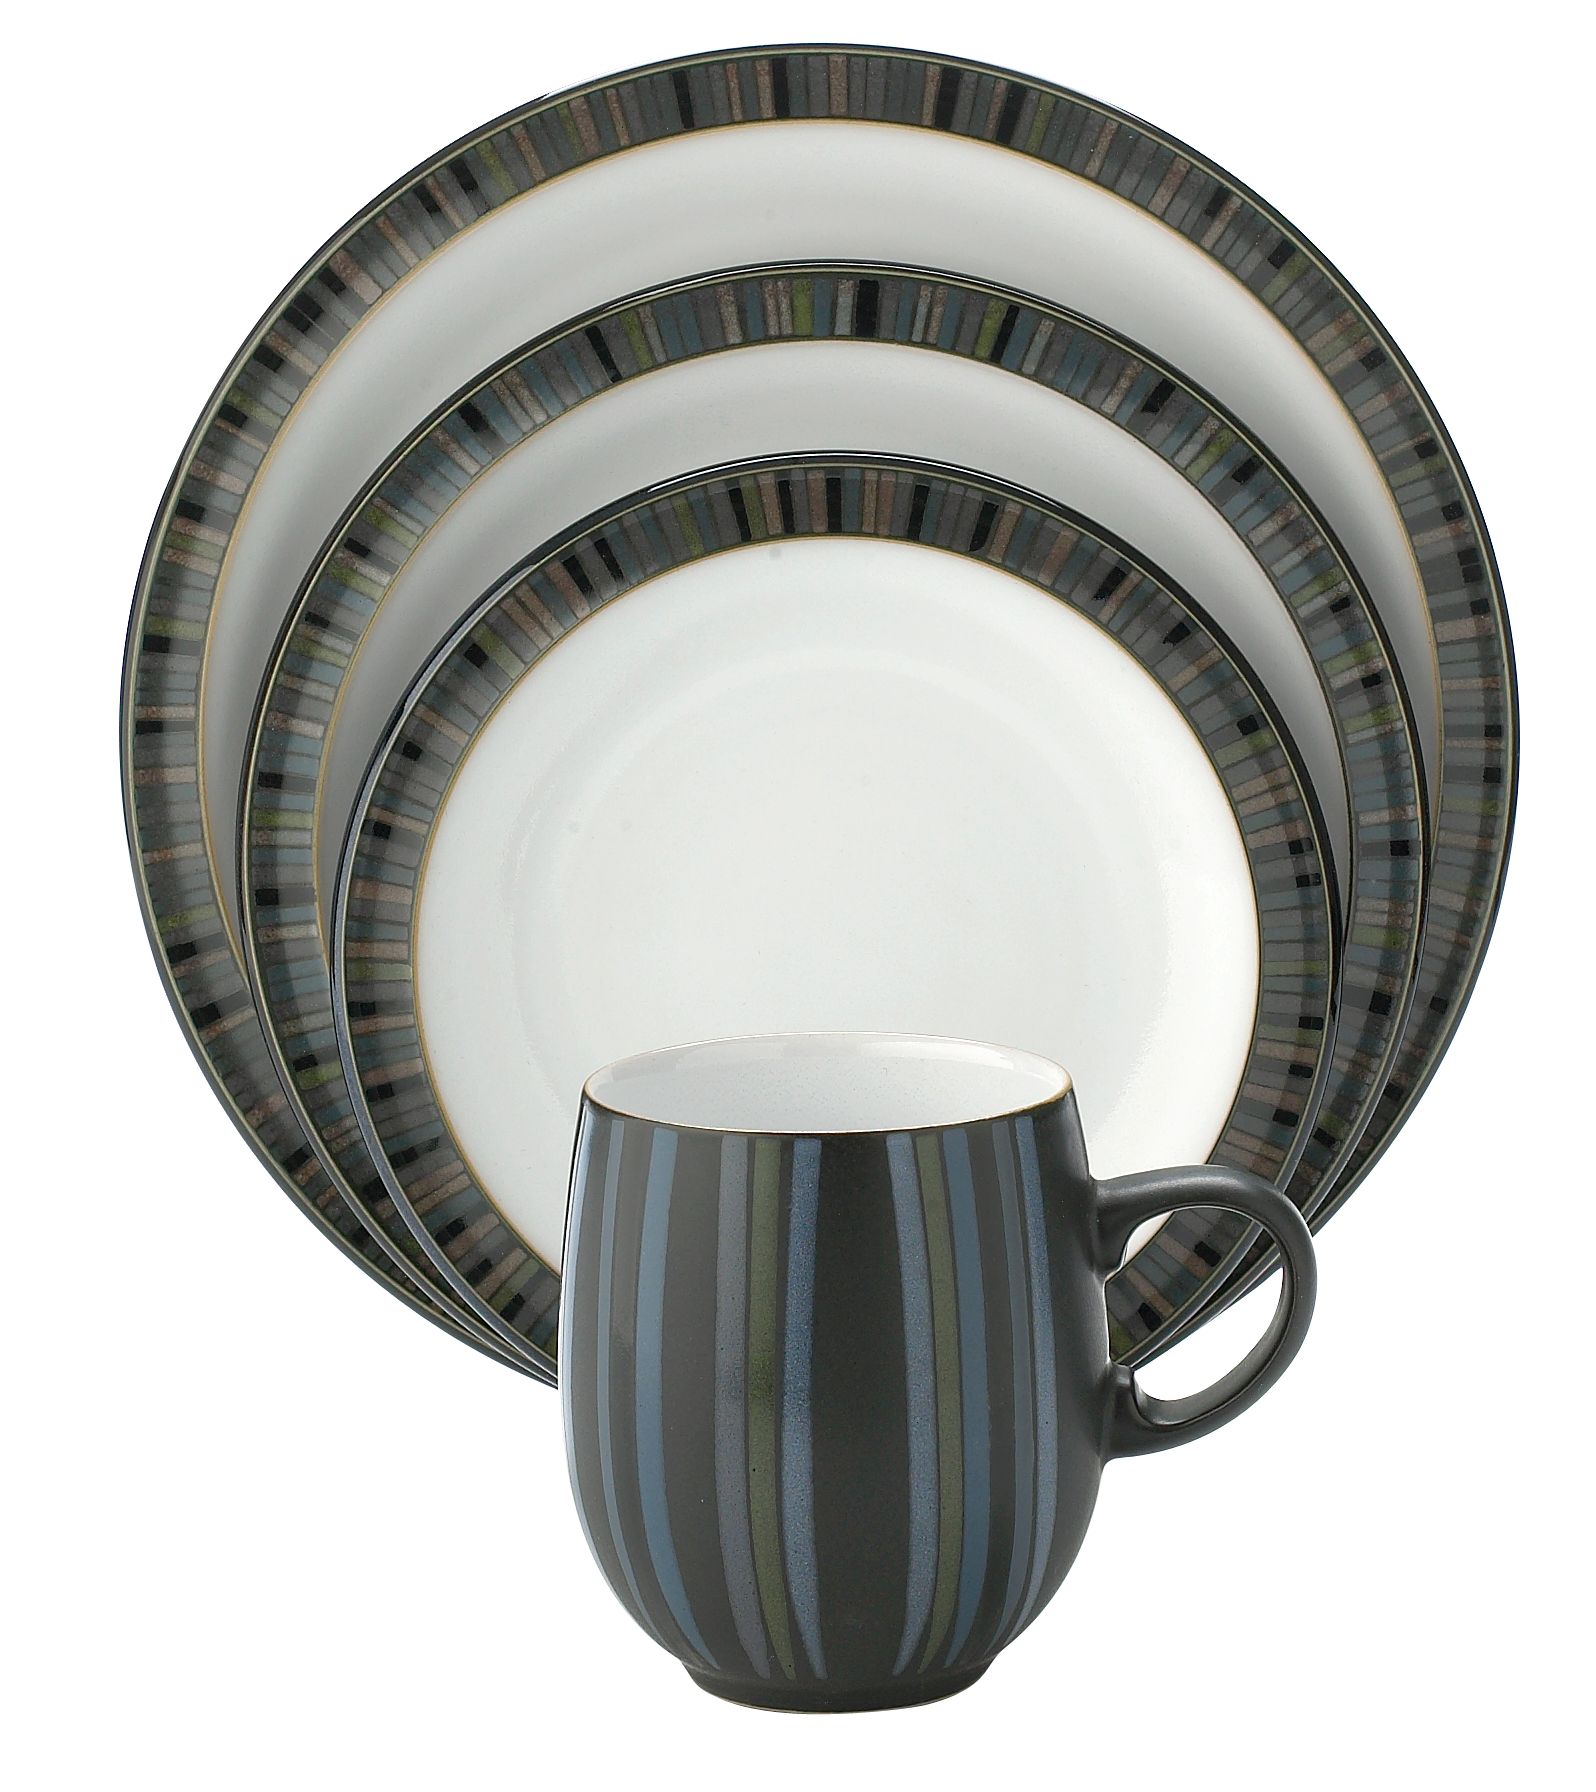 Jet Stripes stoneware dinnerware